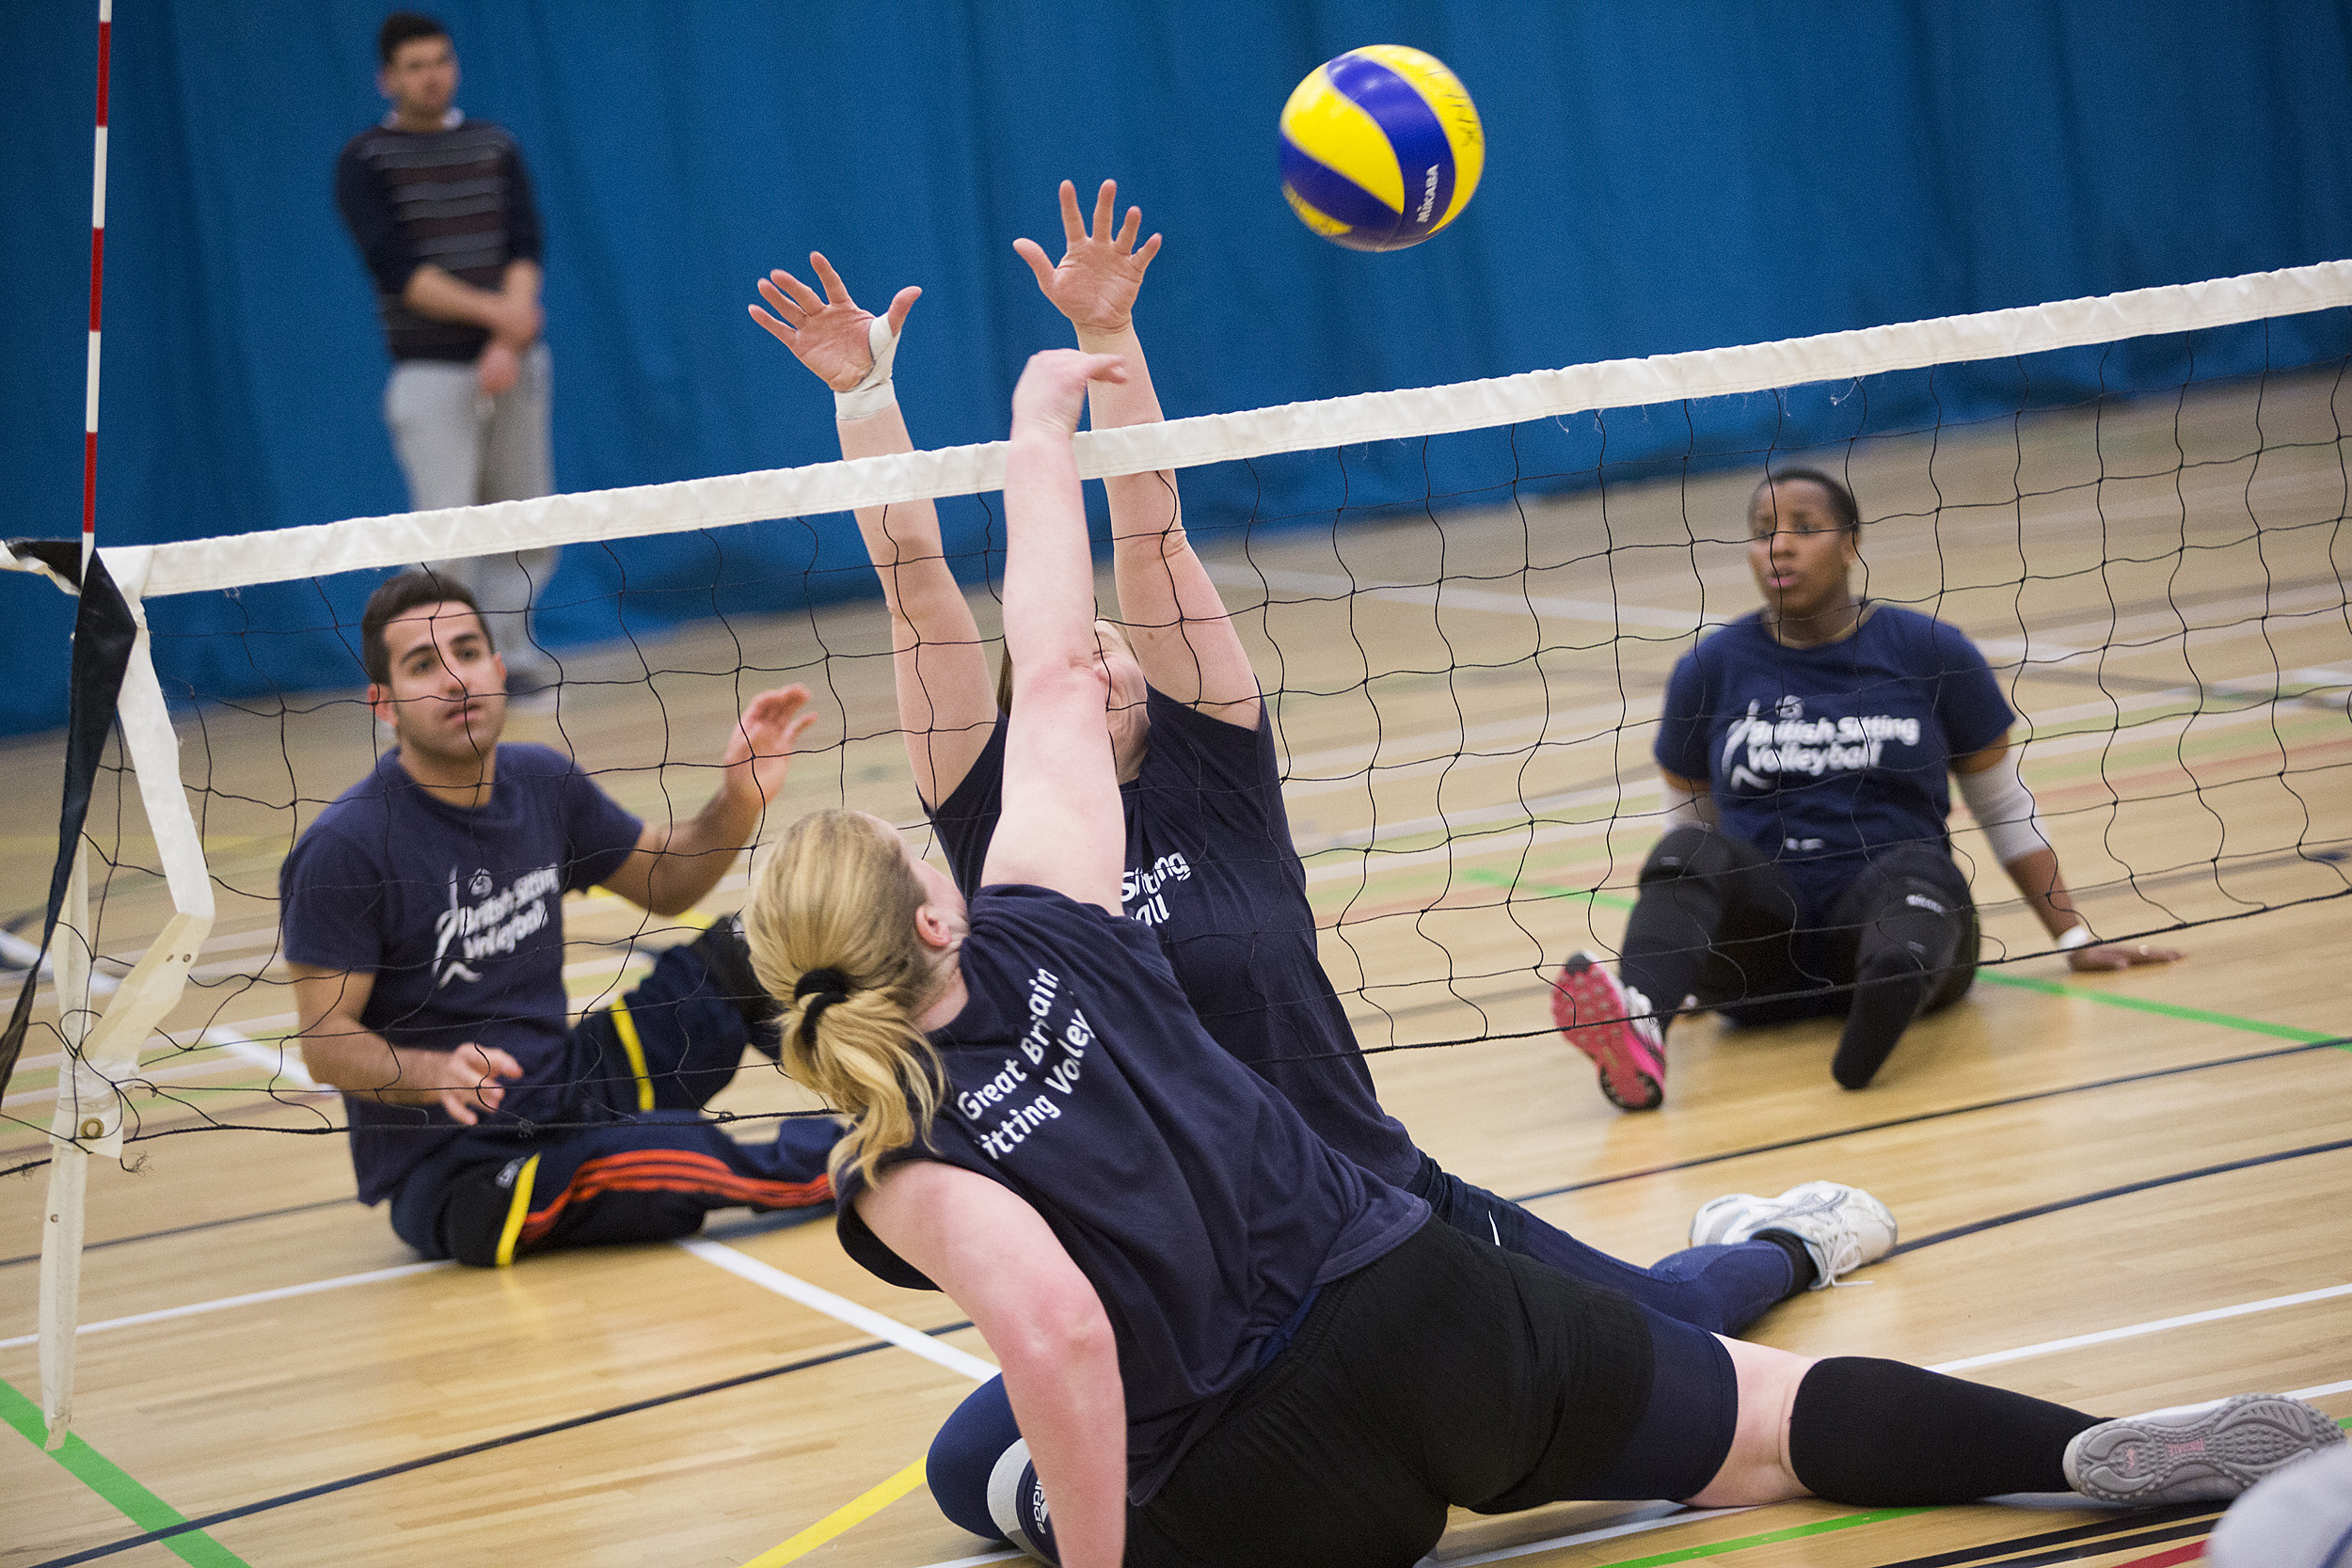 People playing sitting volley ball